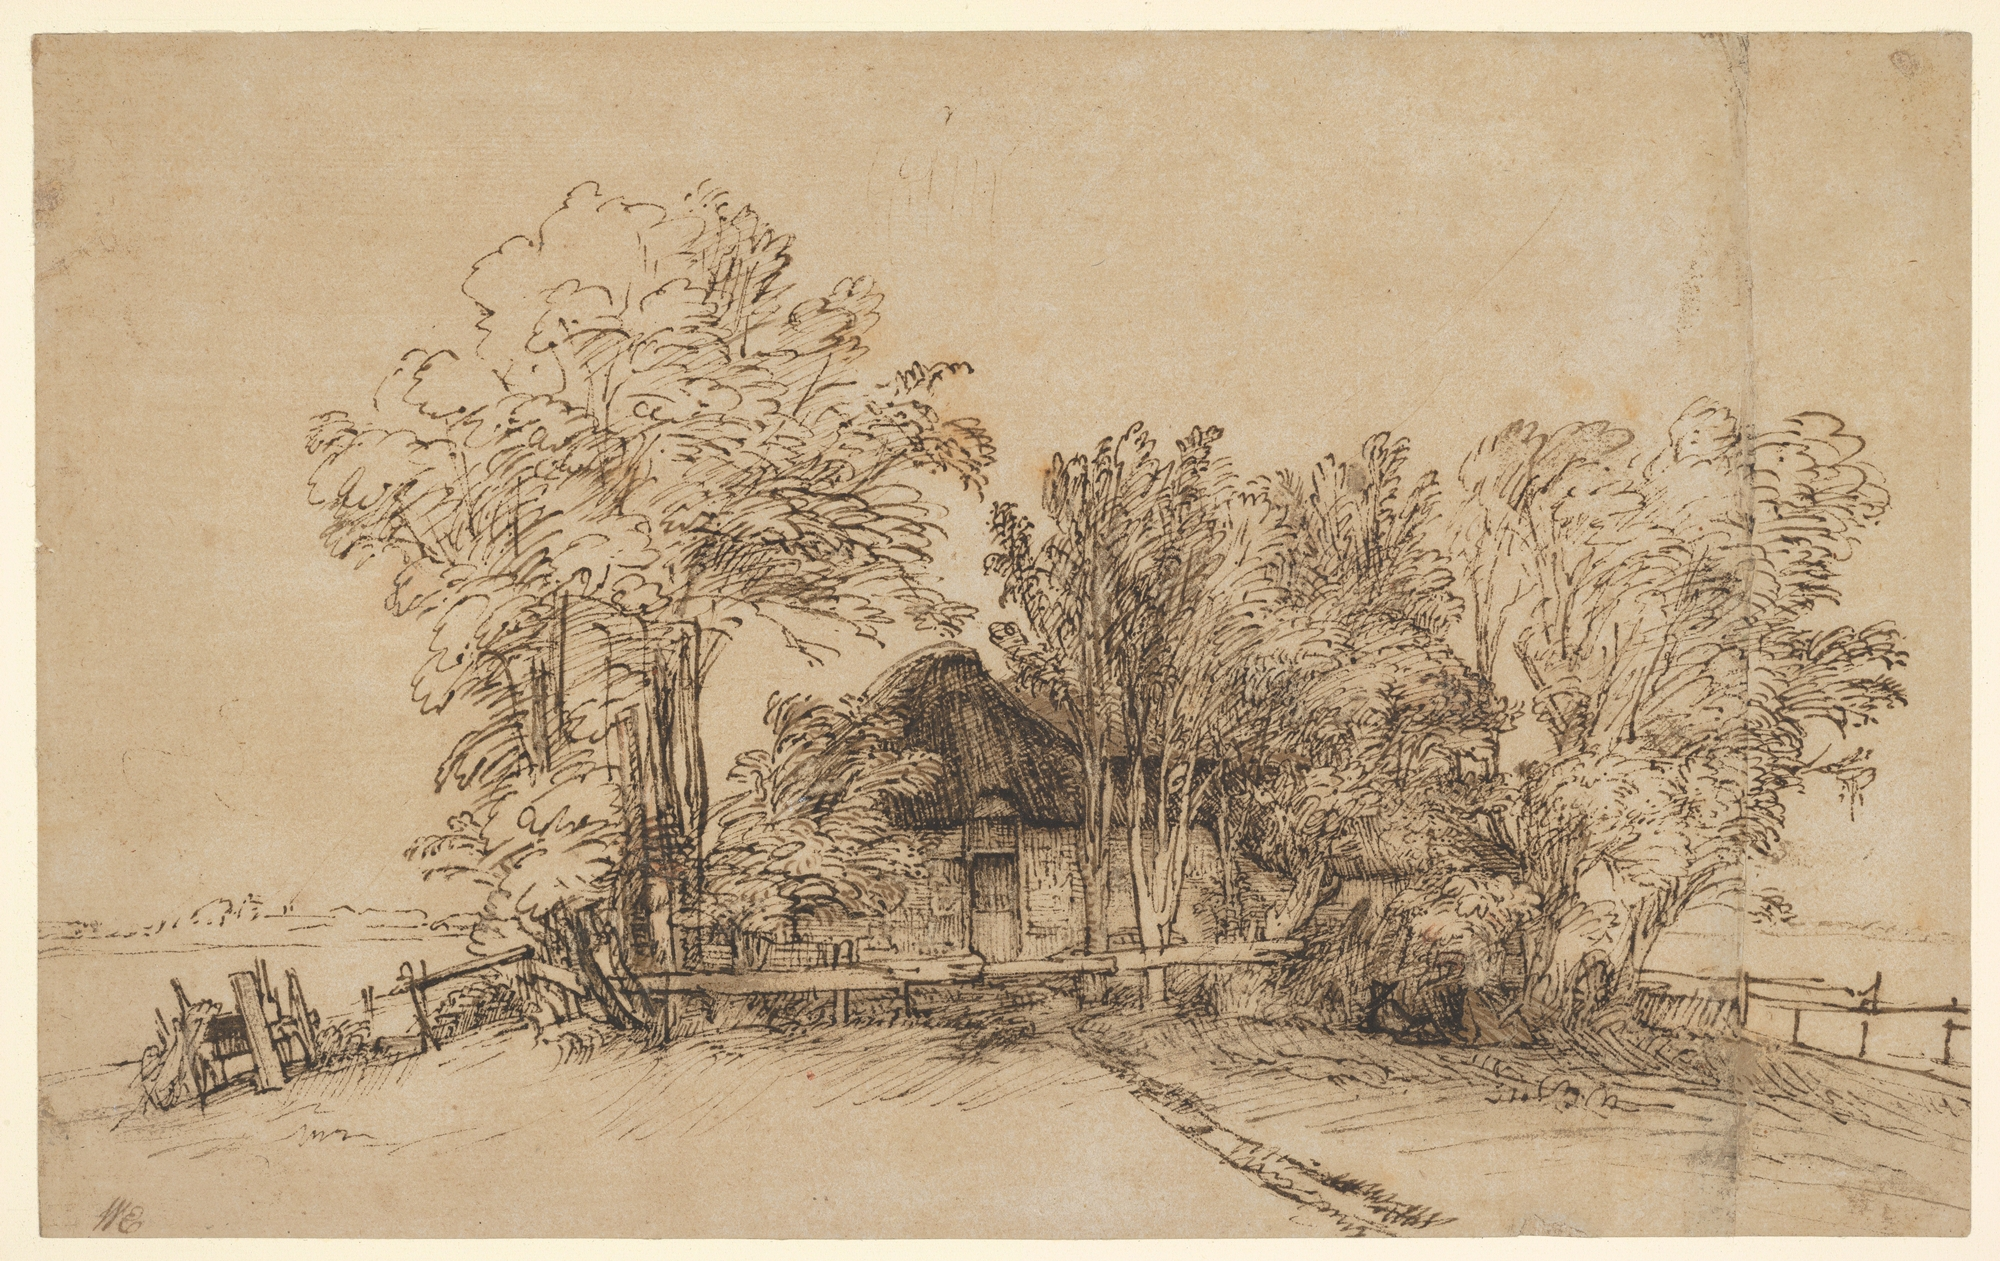 Rembrandt Year 2019: Exhibition Overview – DC USA